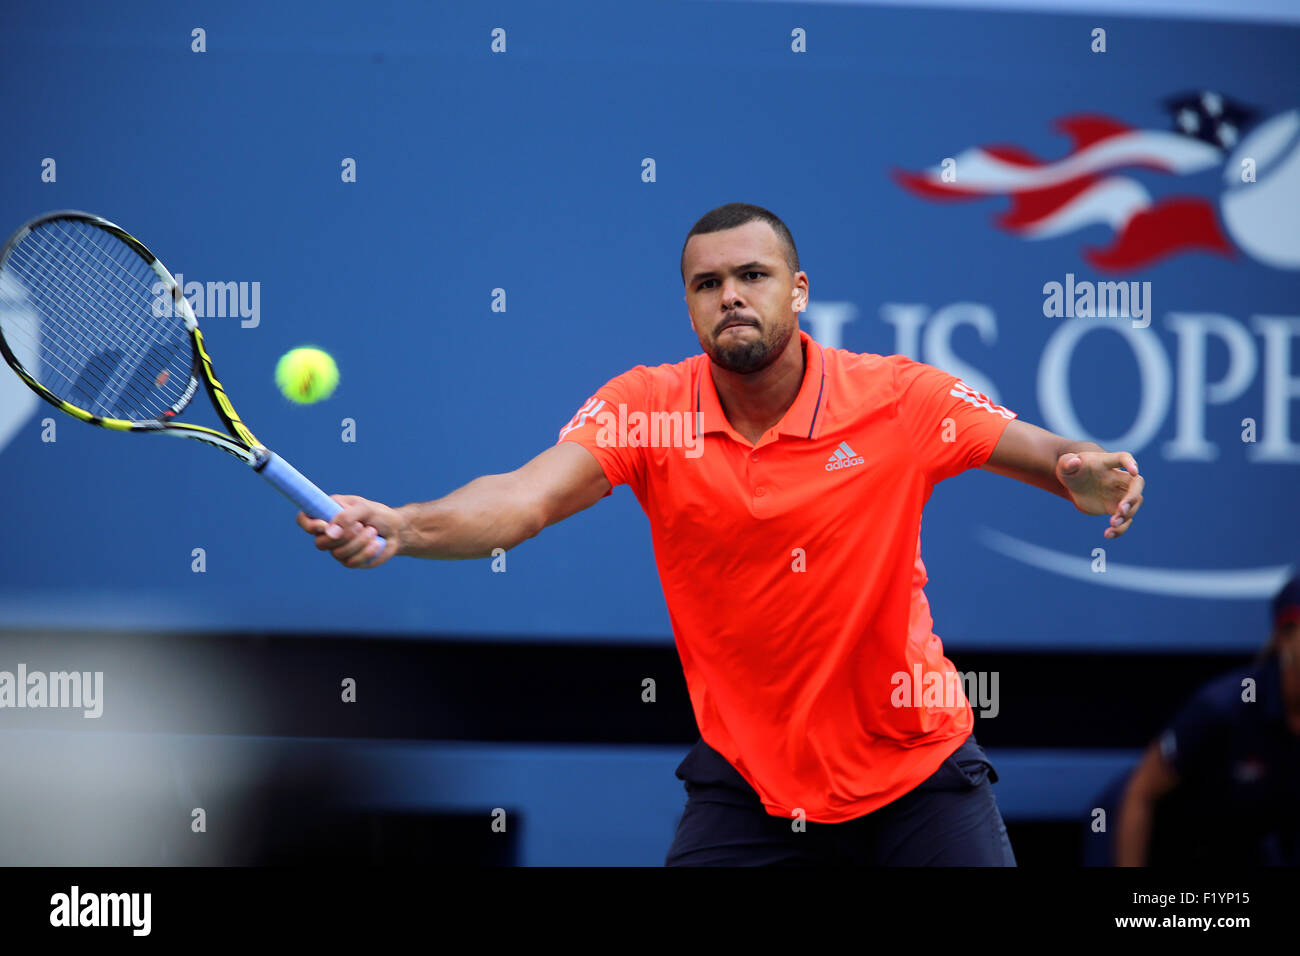 New York, USA. 8th September, 2015. Jo-Wilfred Tsonga of France during his quarterfinal match against Marin Cilic - Stock Image